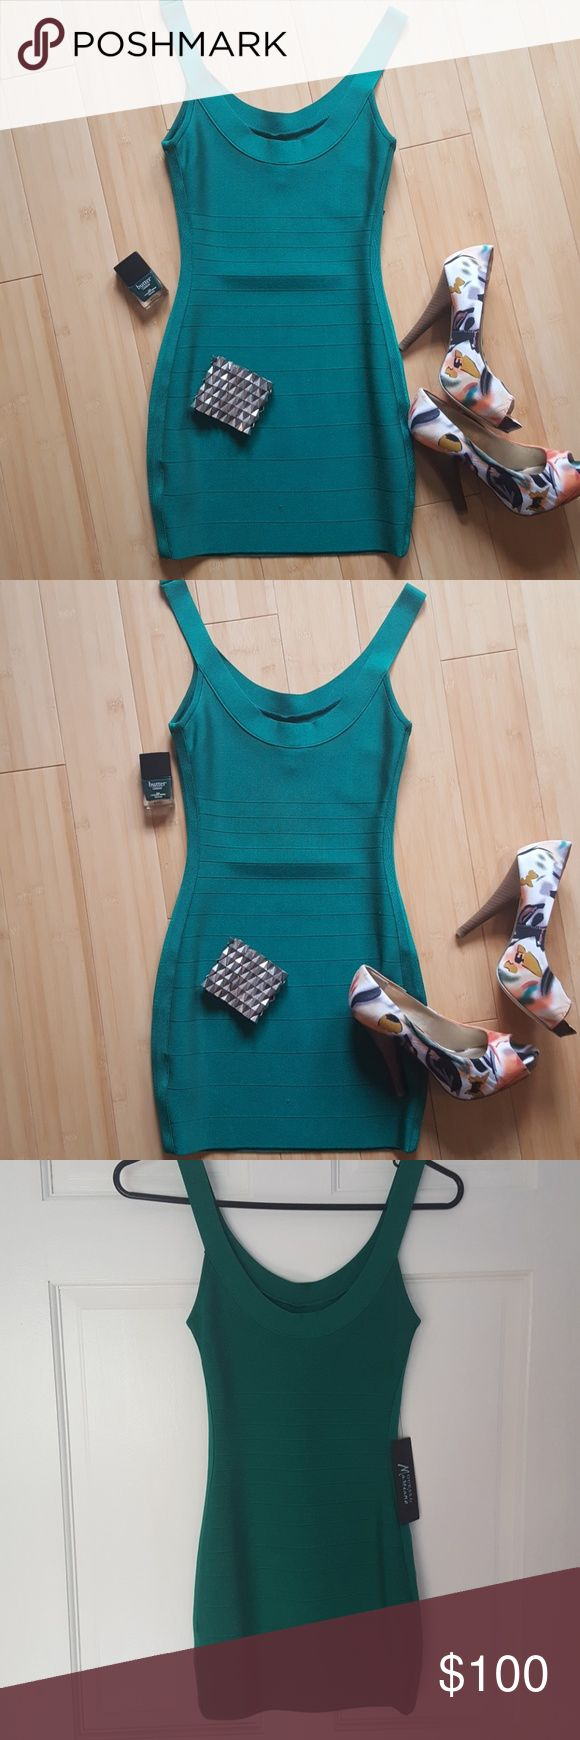 Marciano Bodycon dress Hunter green bodycon dress great for a night out with the girls or even stylish enough for a date night. Pair with heels or sandals for the summer. 29 inches from top to bottom. New with tags. Reasonable offers welcome! Guess by Marciano Dresses Mini